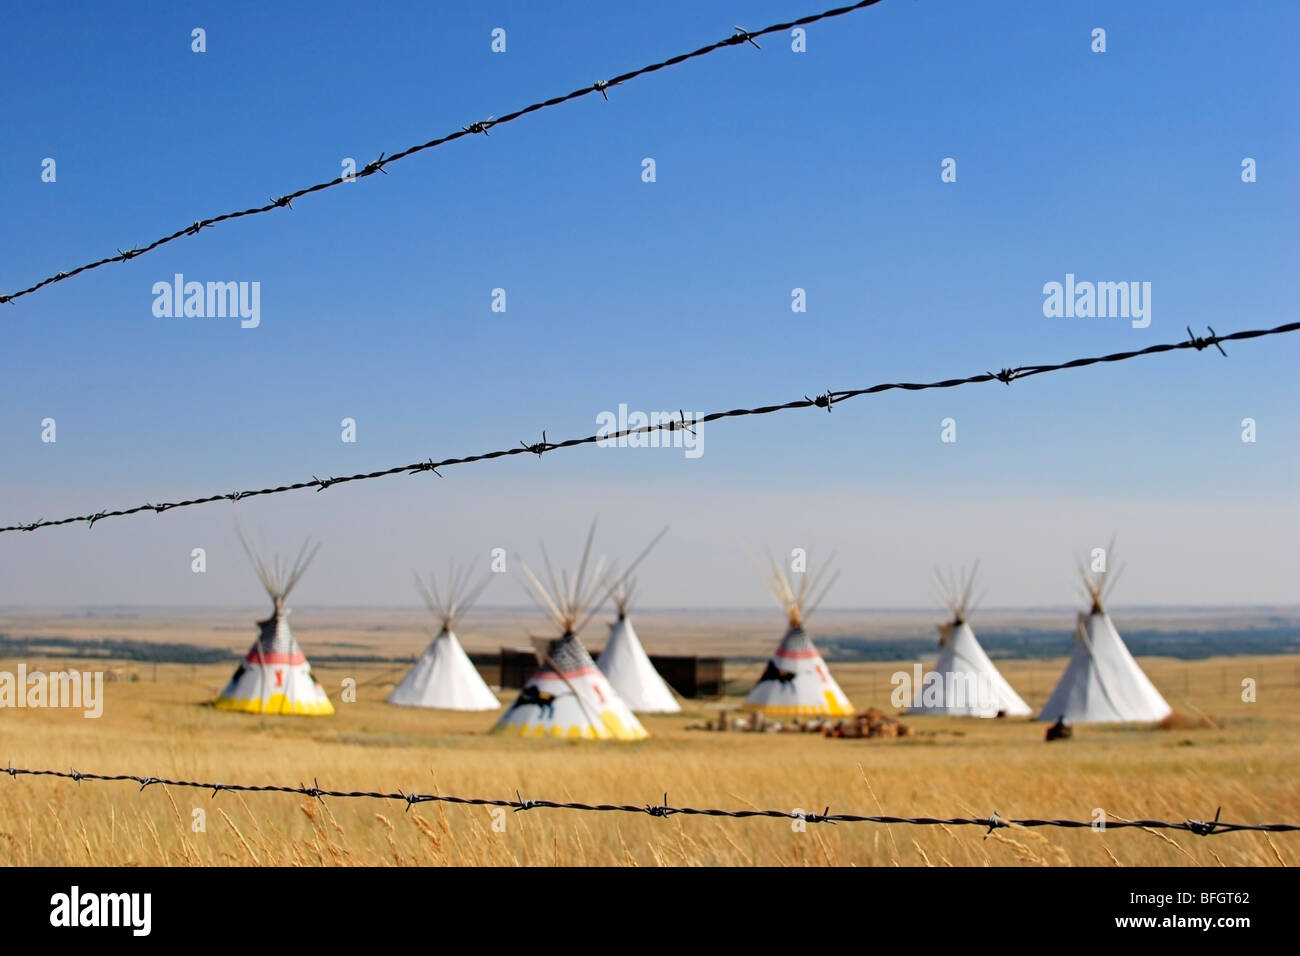 Indian teepees on prairie and barbed wire fence at Head Smashed in Buffalo Jump interpretive centre, Alberta, Canada - Stock Image